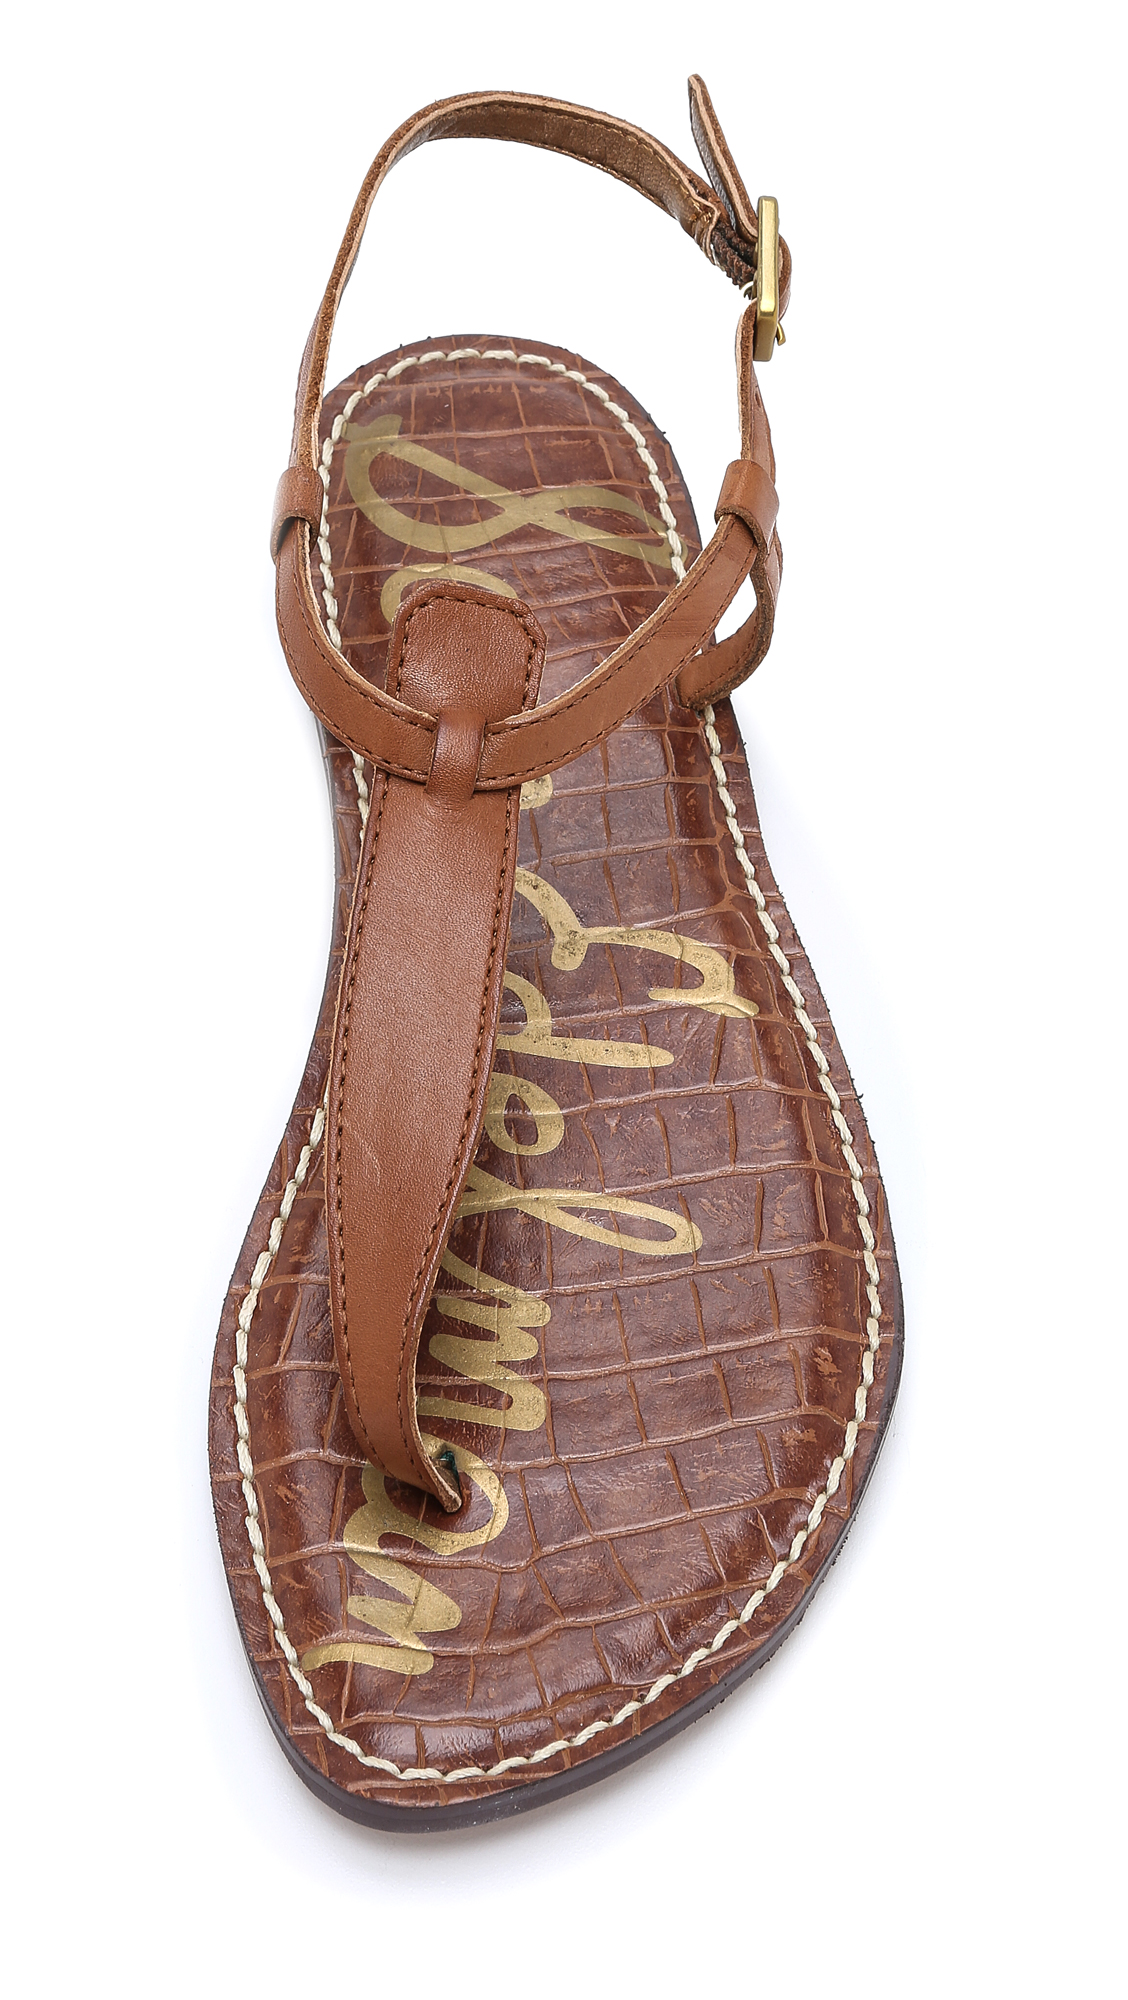 Flat sandals - Sam Edelman Gigi Flat Sandals 15 Off First App Purchase With Code 15foryou